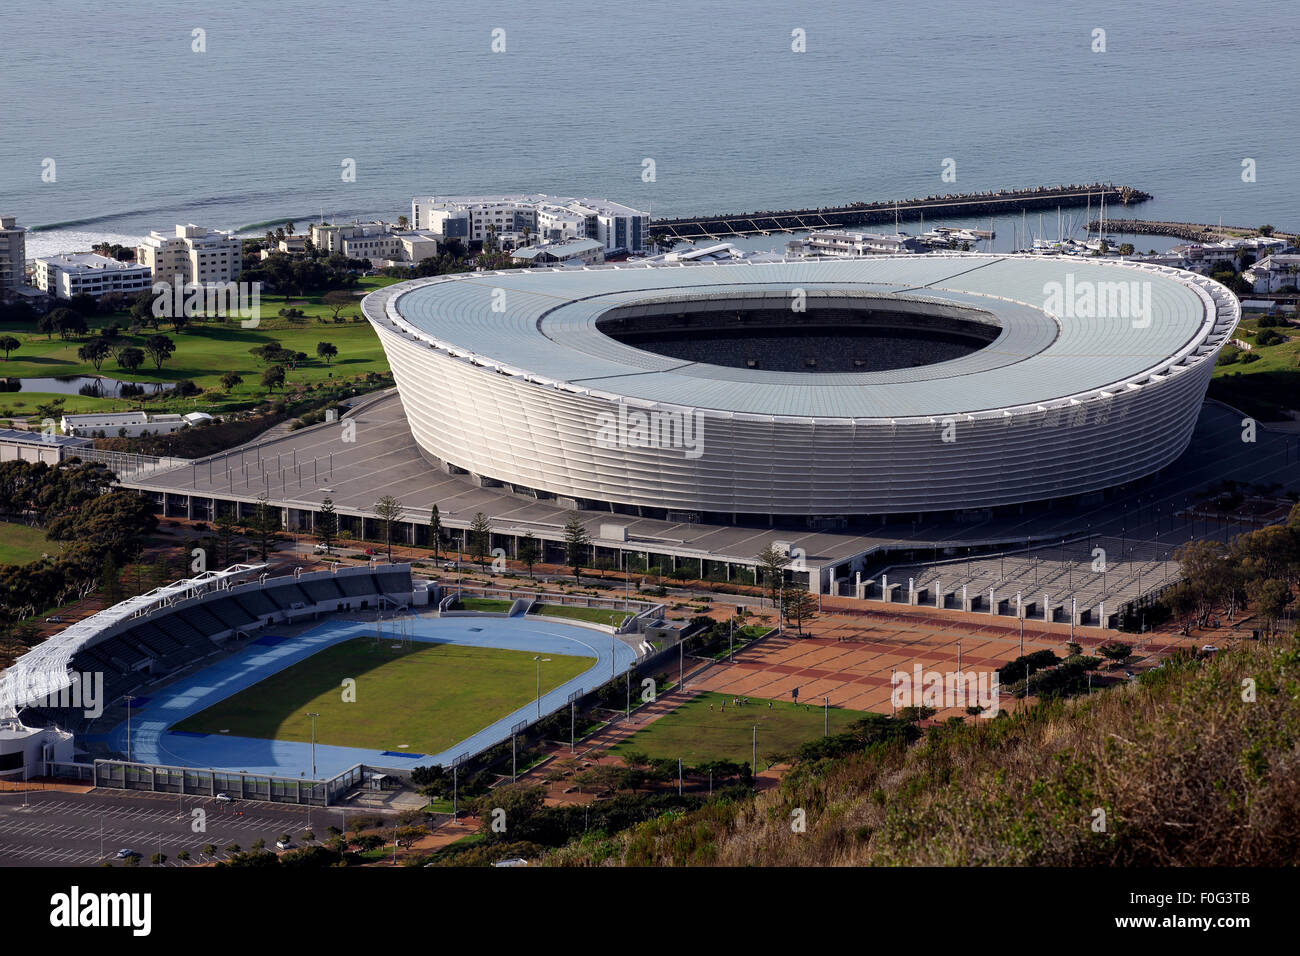 Cape Town Stadium on the waterfront in Sea Point, built for the  2010 FIFA World Cup and home to Ajax Cape Town - Stock Image